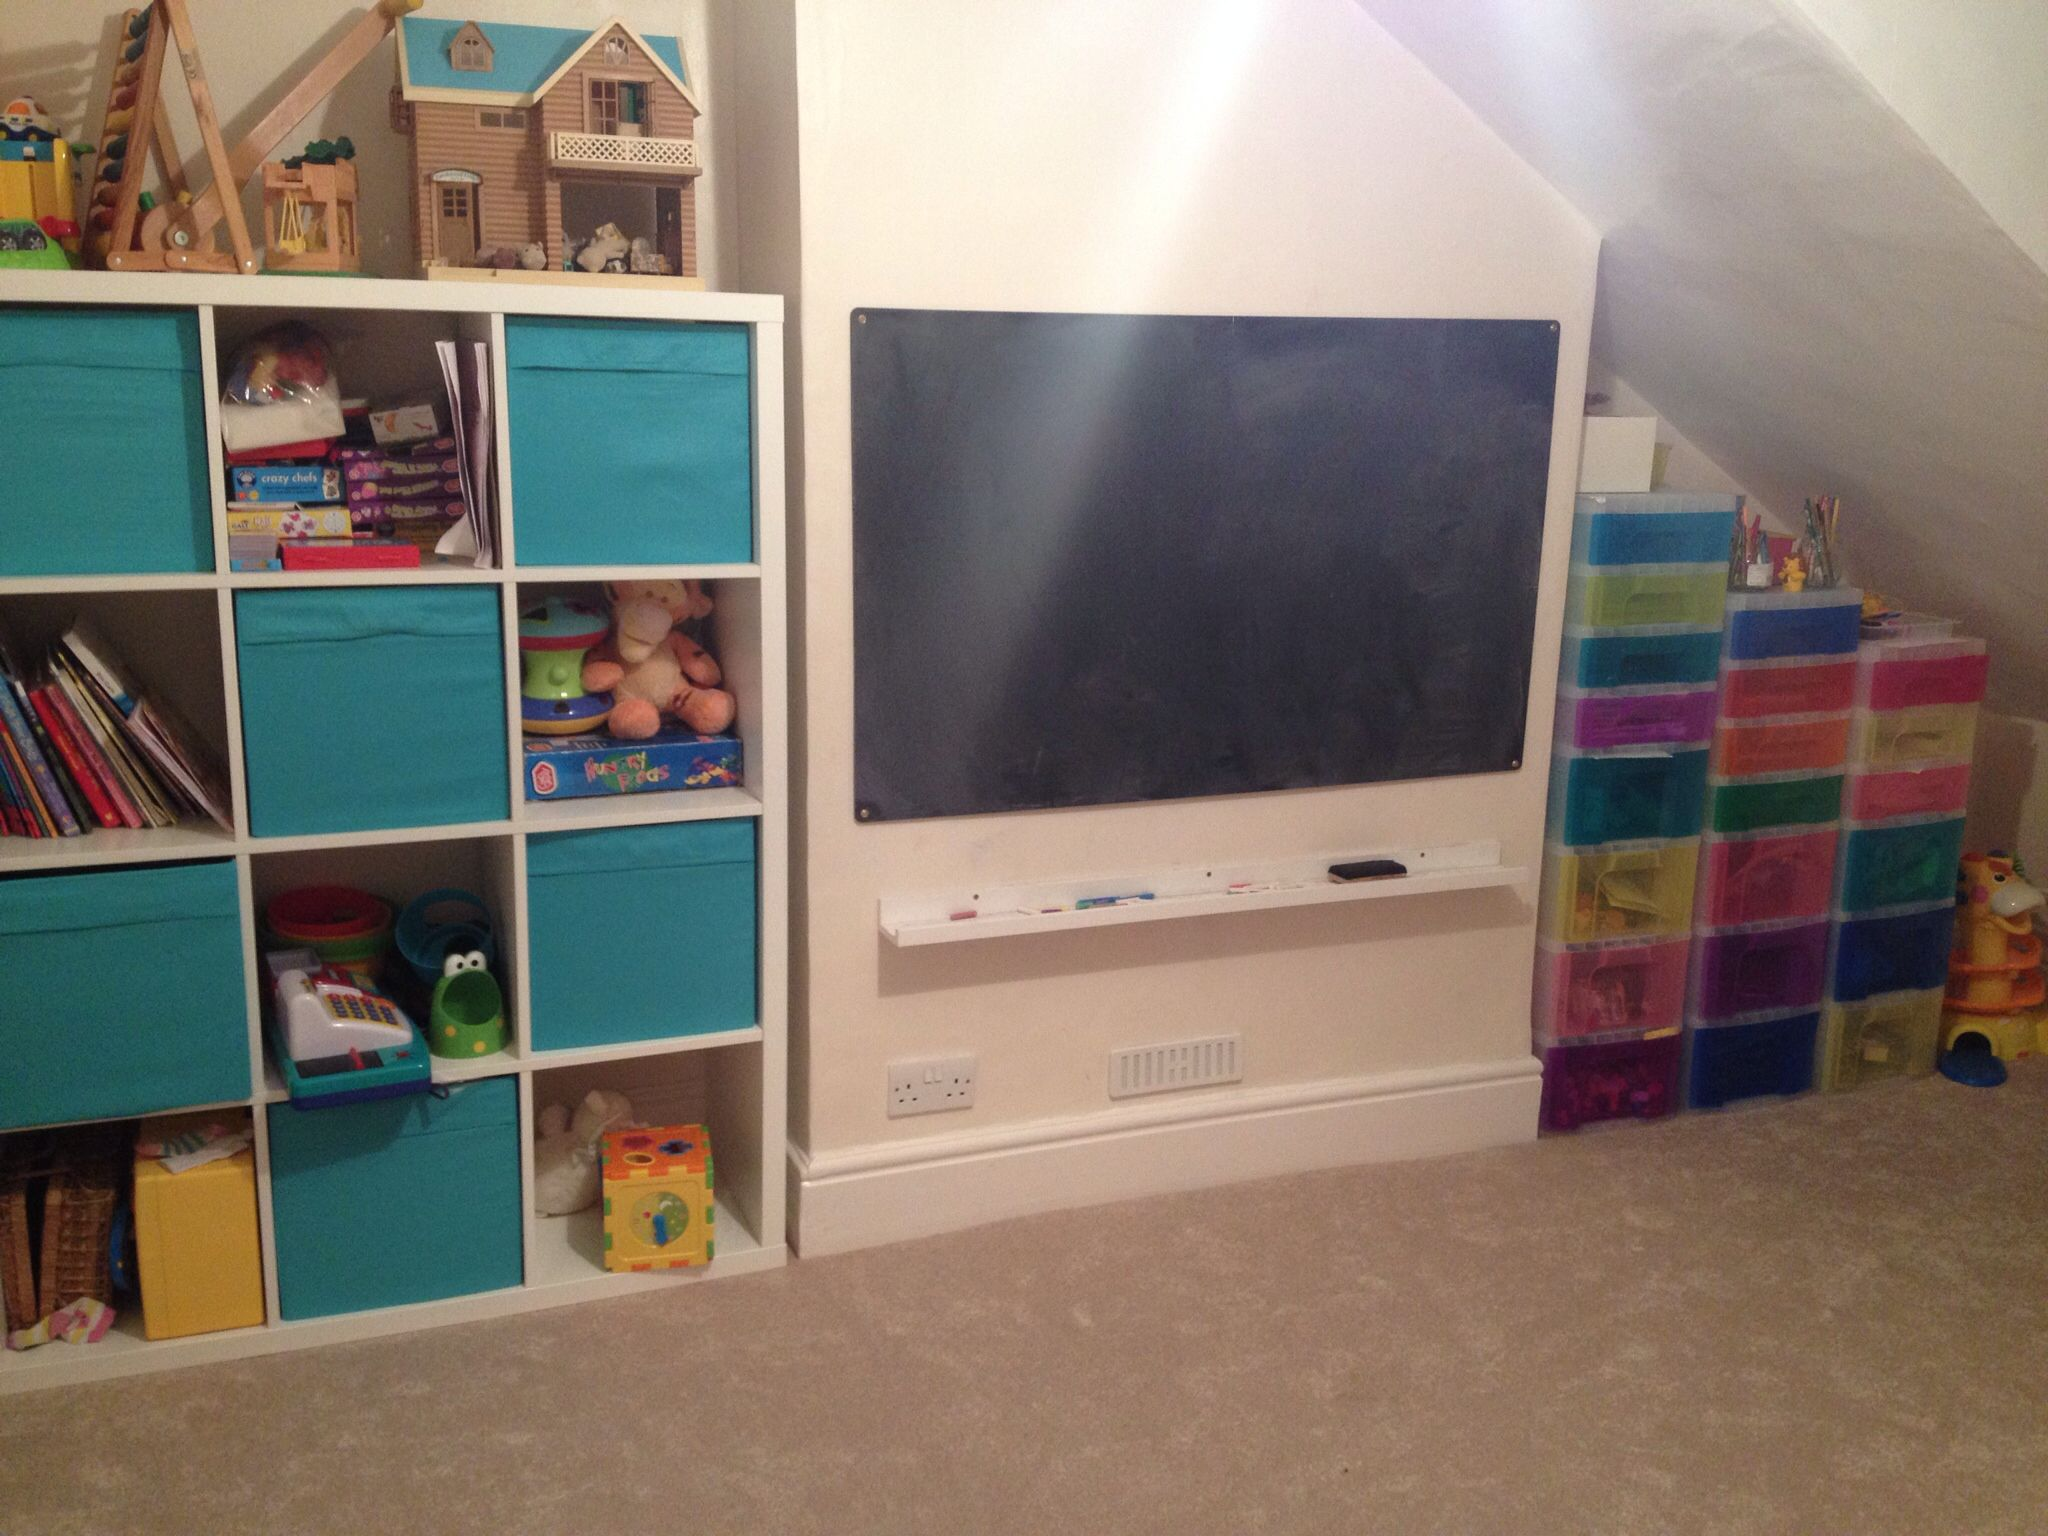 Our playroom kallax toy storage from ikea the doodle drawers from hobbycraft blackboard - Toy shelves ikea ...